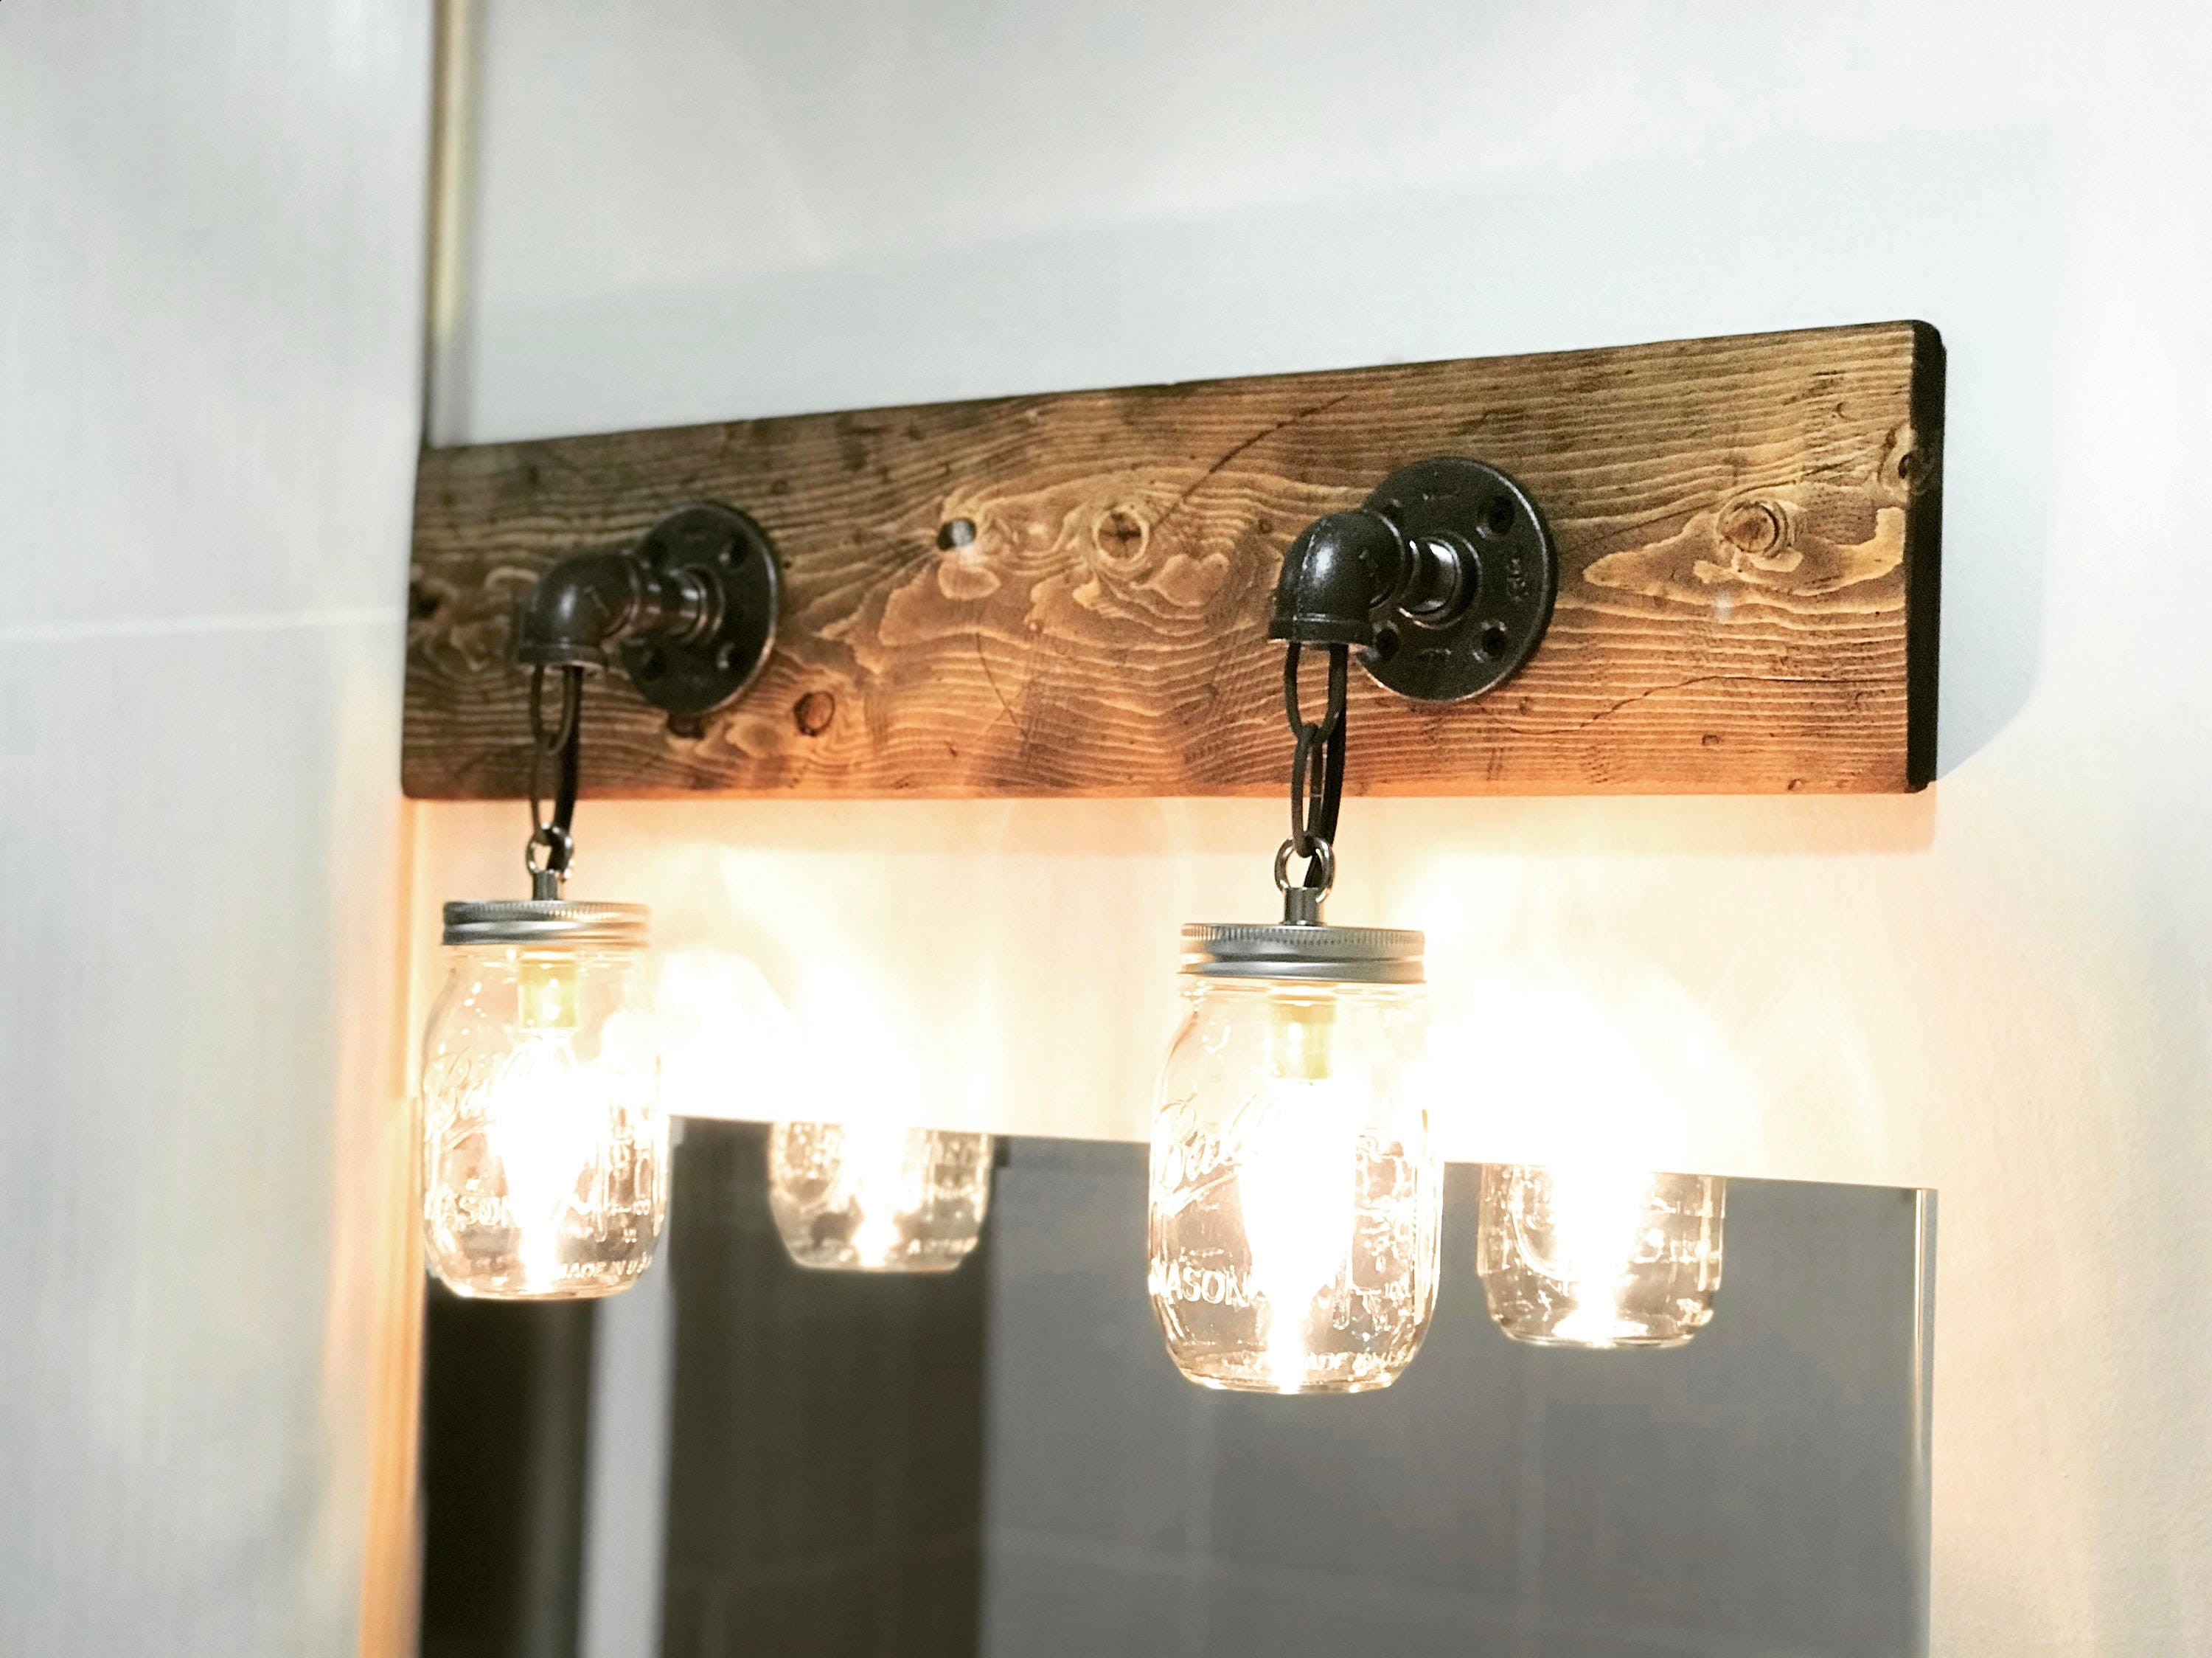 Rustic Industrial Modern Mason Jar Lights Vanity Light: Rustic Industrial Modern Mason Jar Lights Vanity Light